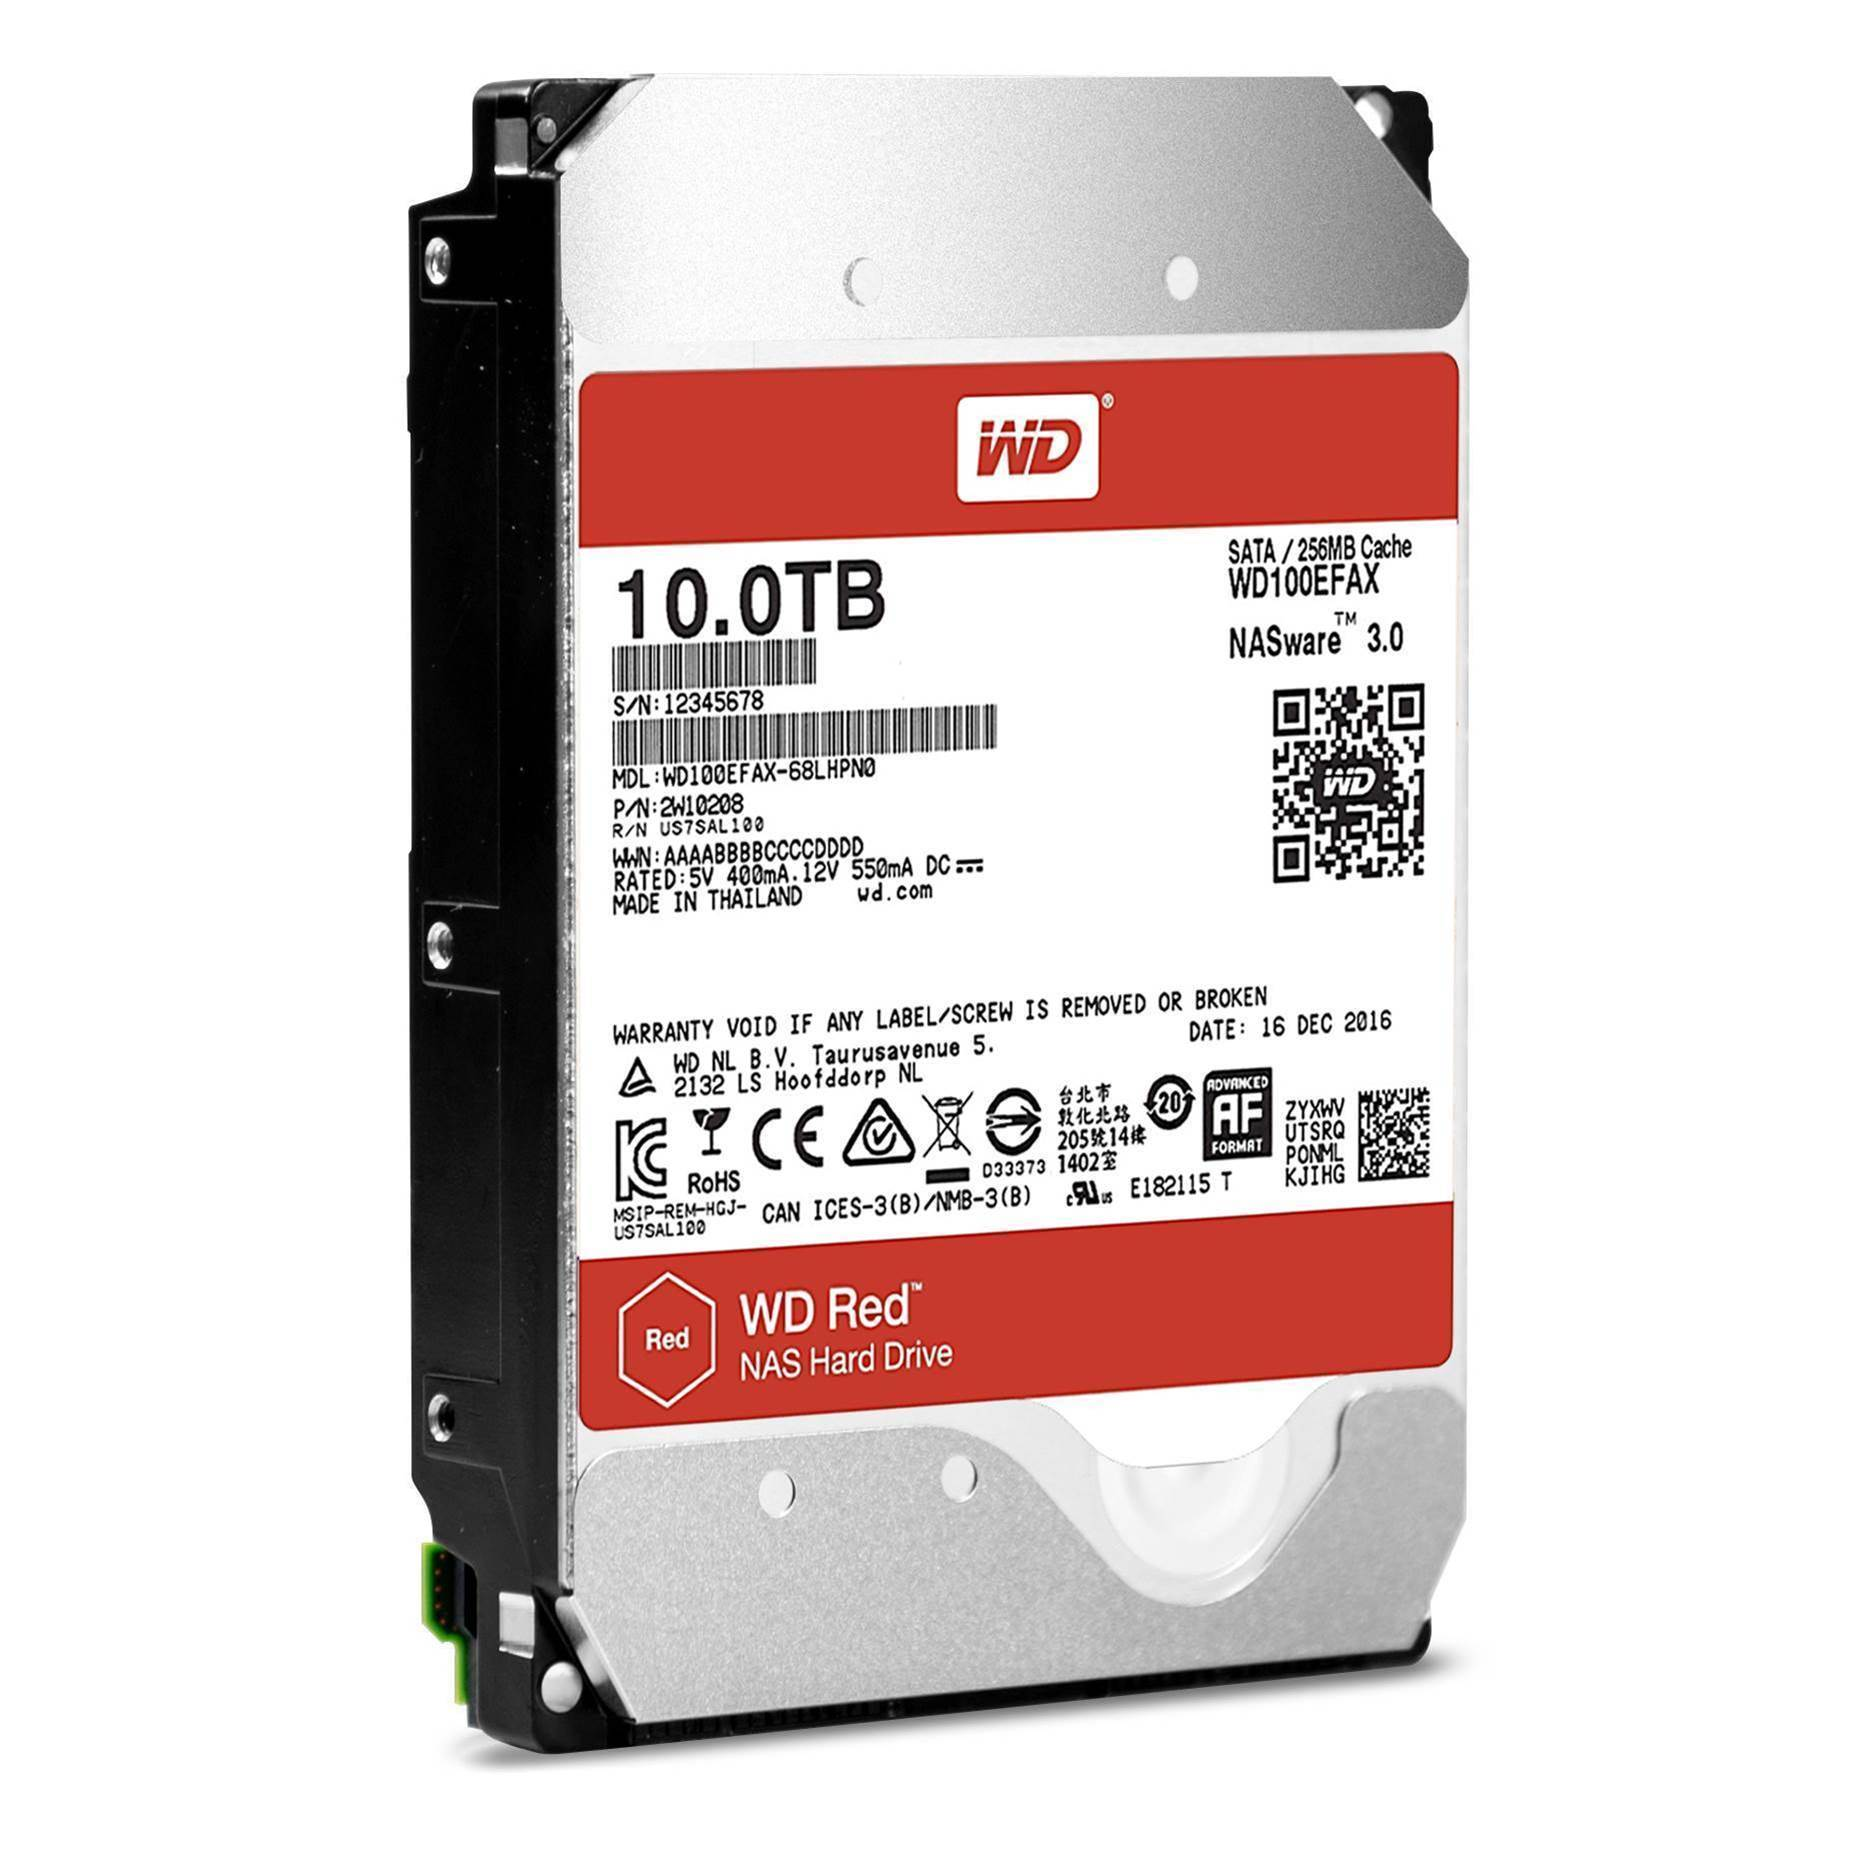 Western Digital releases 10TB WD Red and WD Red Pro drives